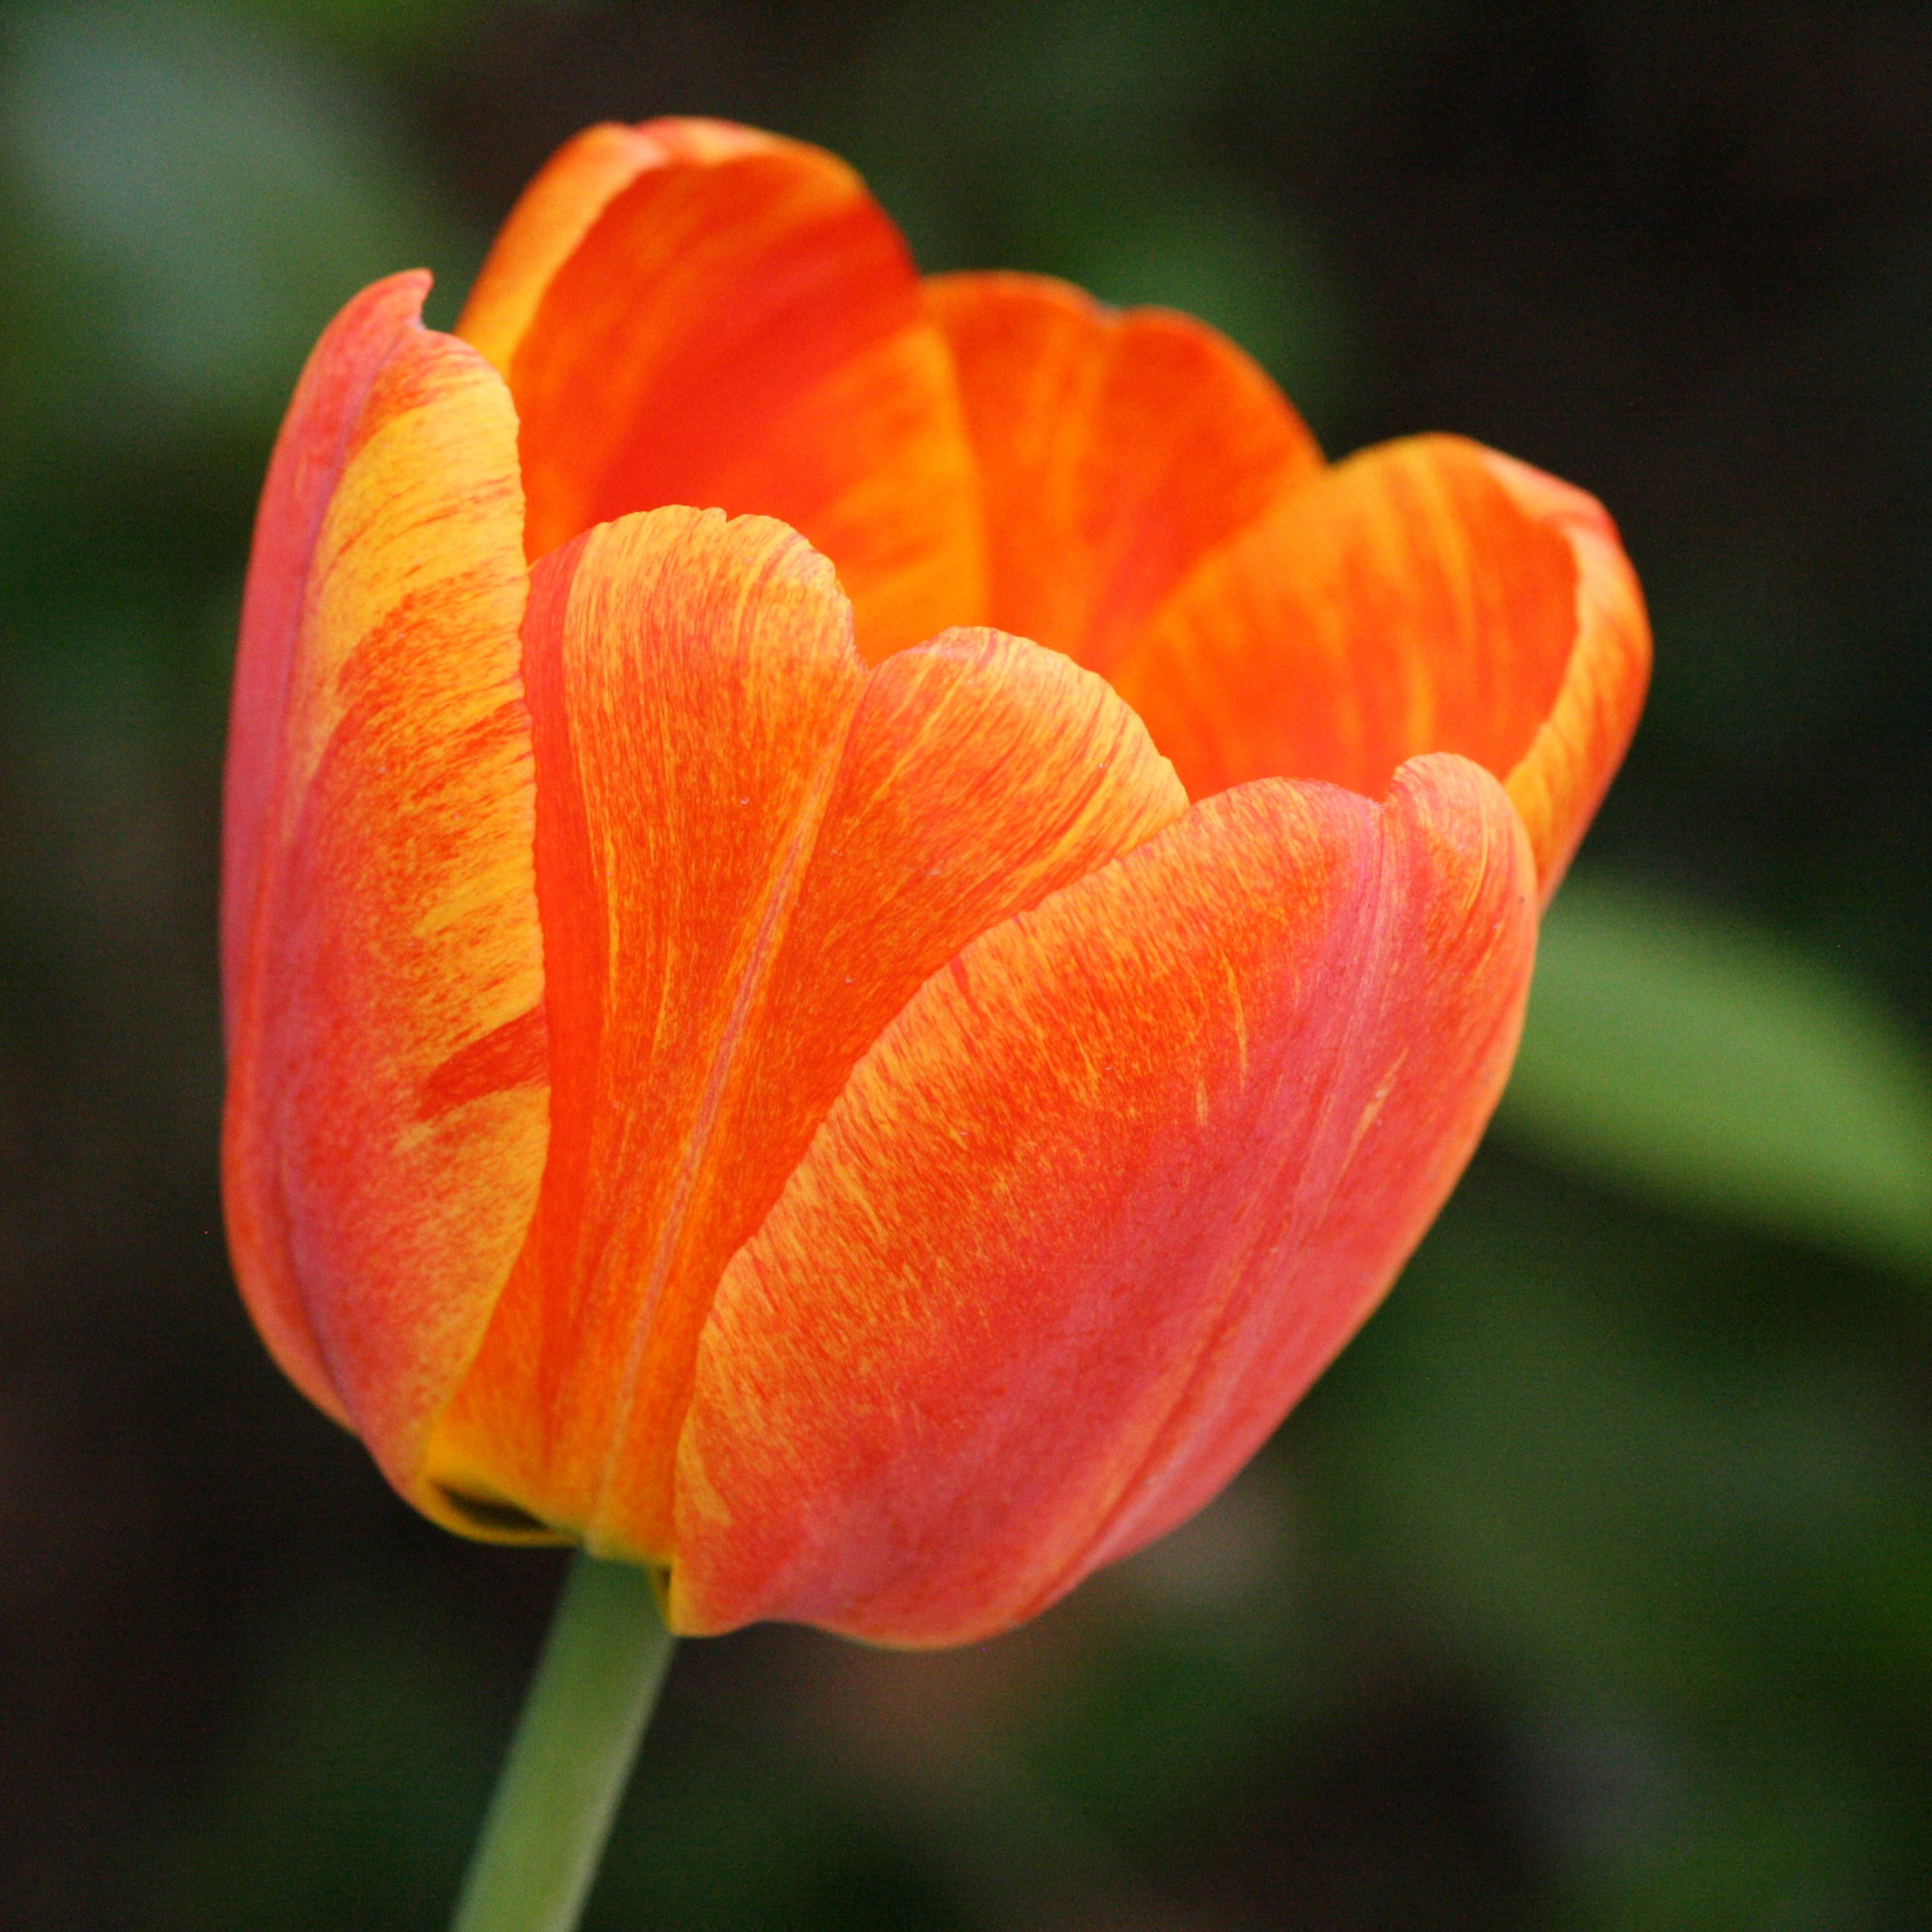 Orange Striped Or Variegated Tulip Picture Free